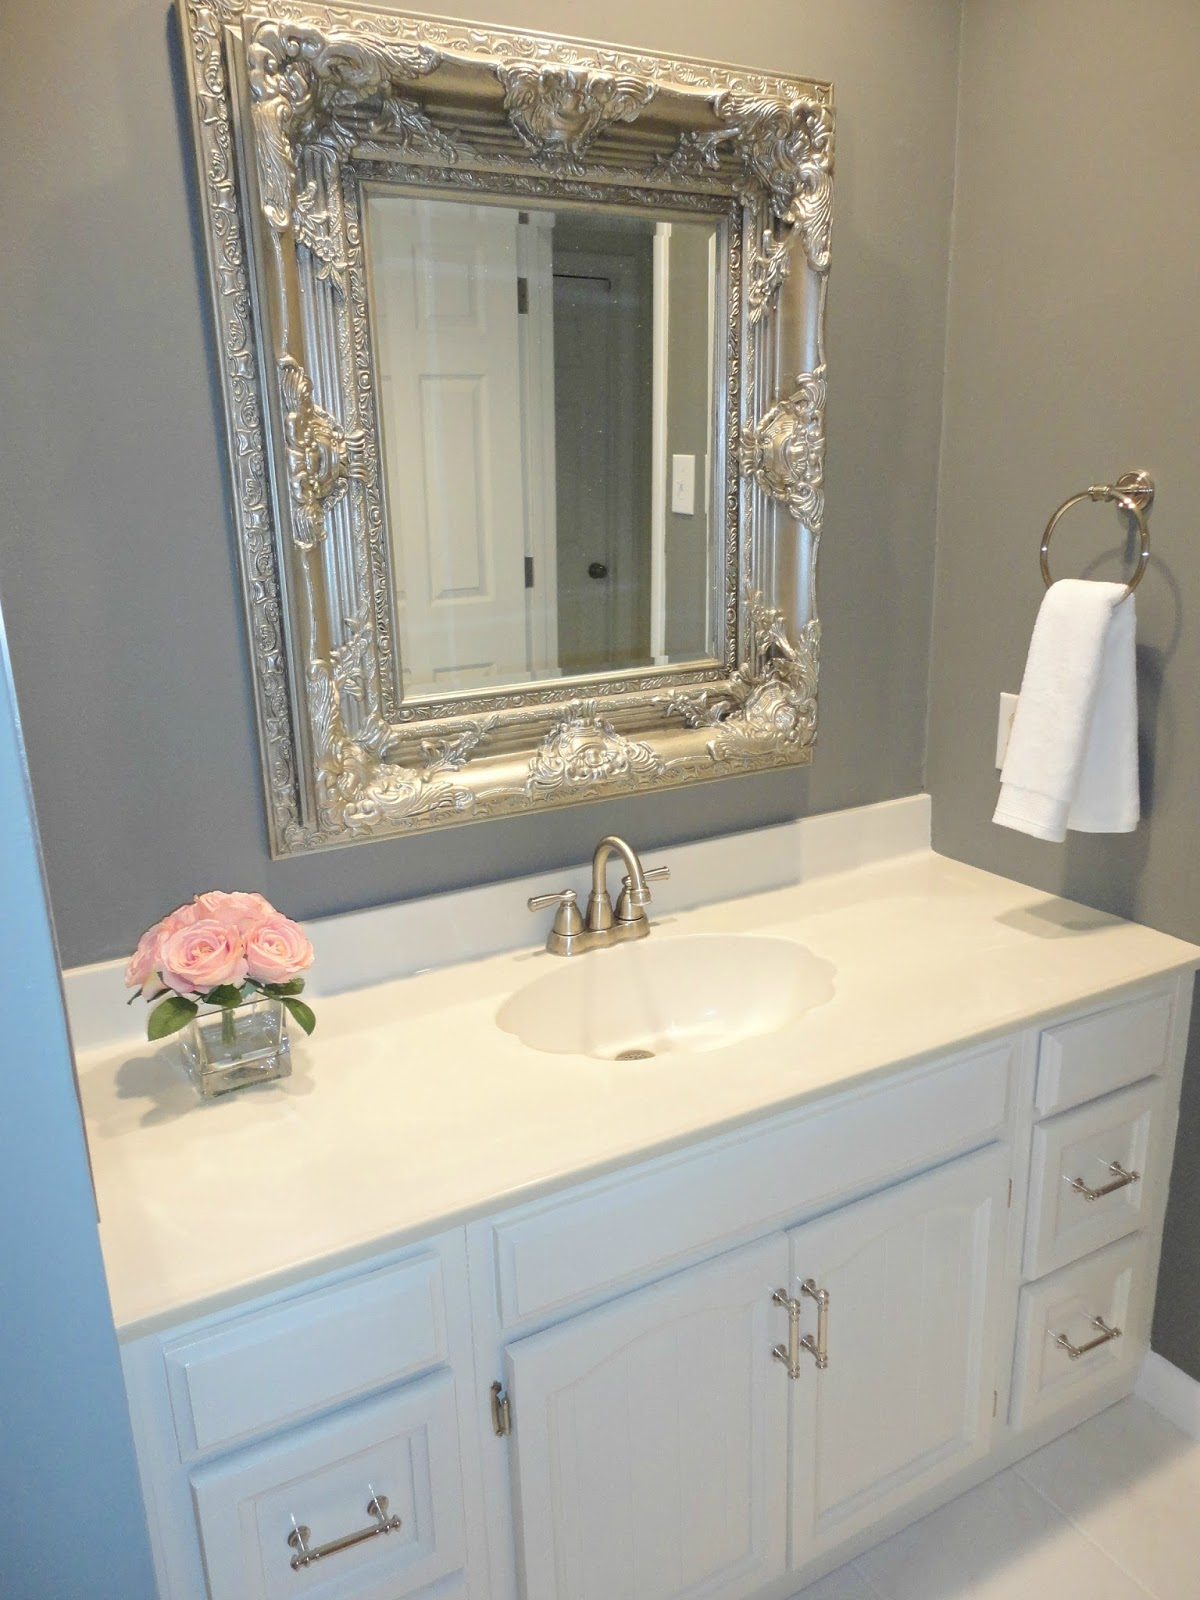 Cheap Diy Bathroom Remodel Ideas livelovediy: diy bathroom remodel on a budget